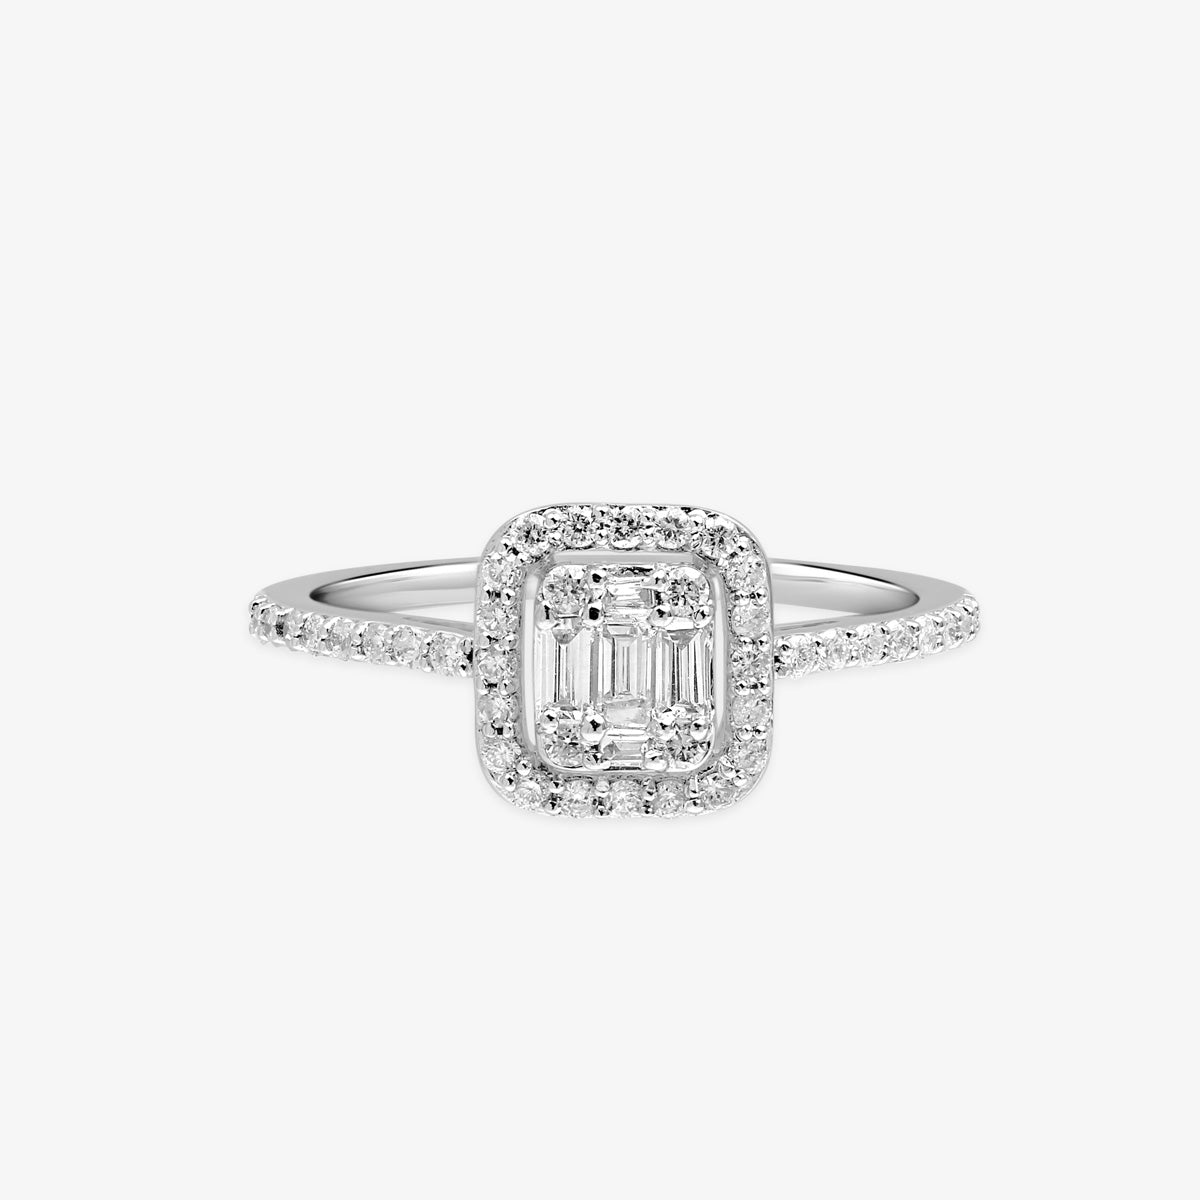 Baguette And Round Diamond Engagement Ring With The Cushion Halo - estellacollection